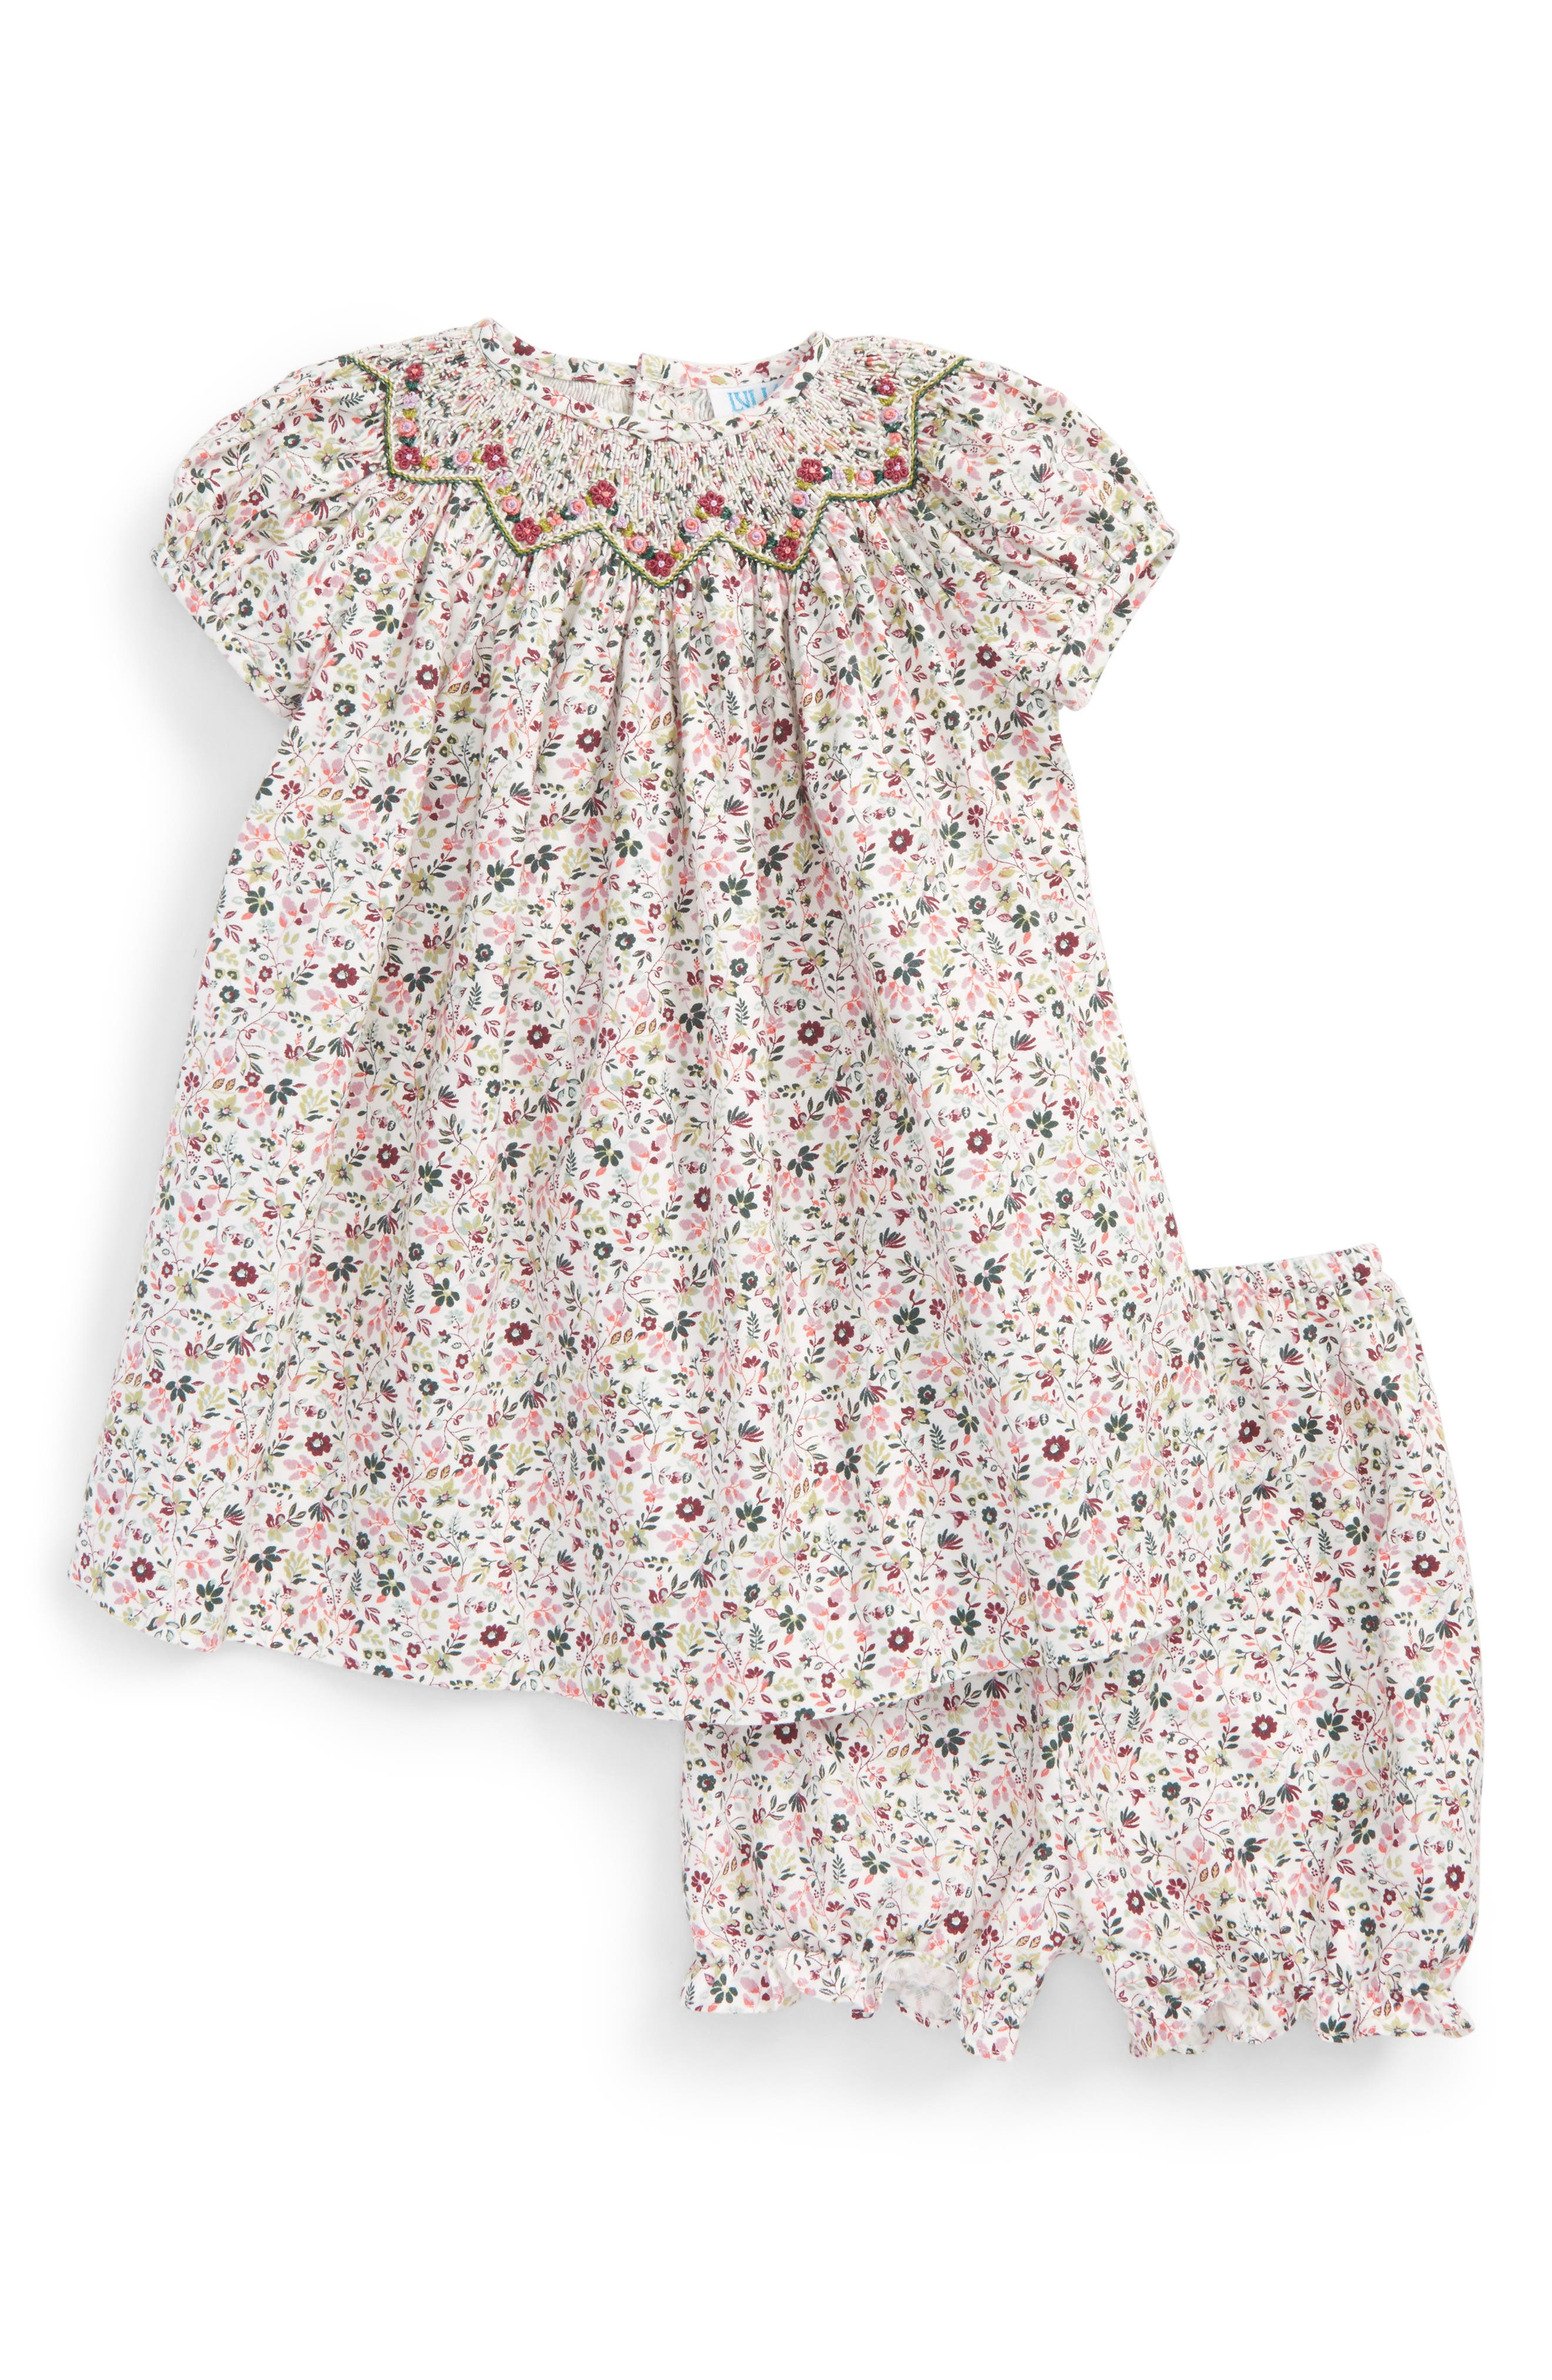 Alternate Image 1 Selected - Luli & Me Belina Shift Dress (Baby Girls)